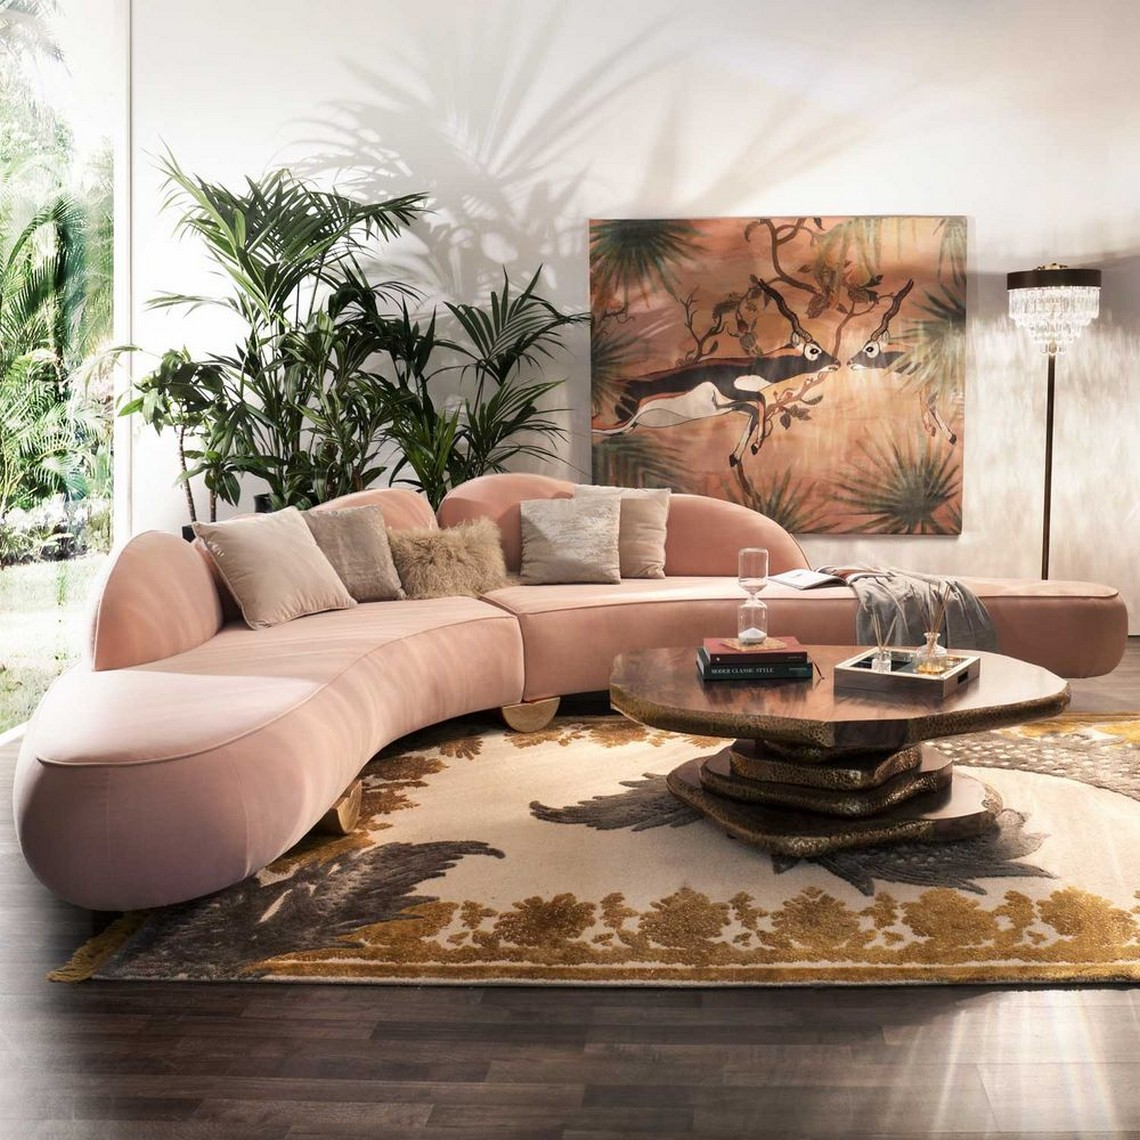 5 Modern Sofas That Will Innovate Your Dream House modern sofas 5 Modern Sofas That Will Innovate Your Dream House fitzroy